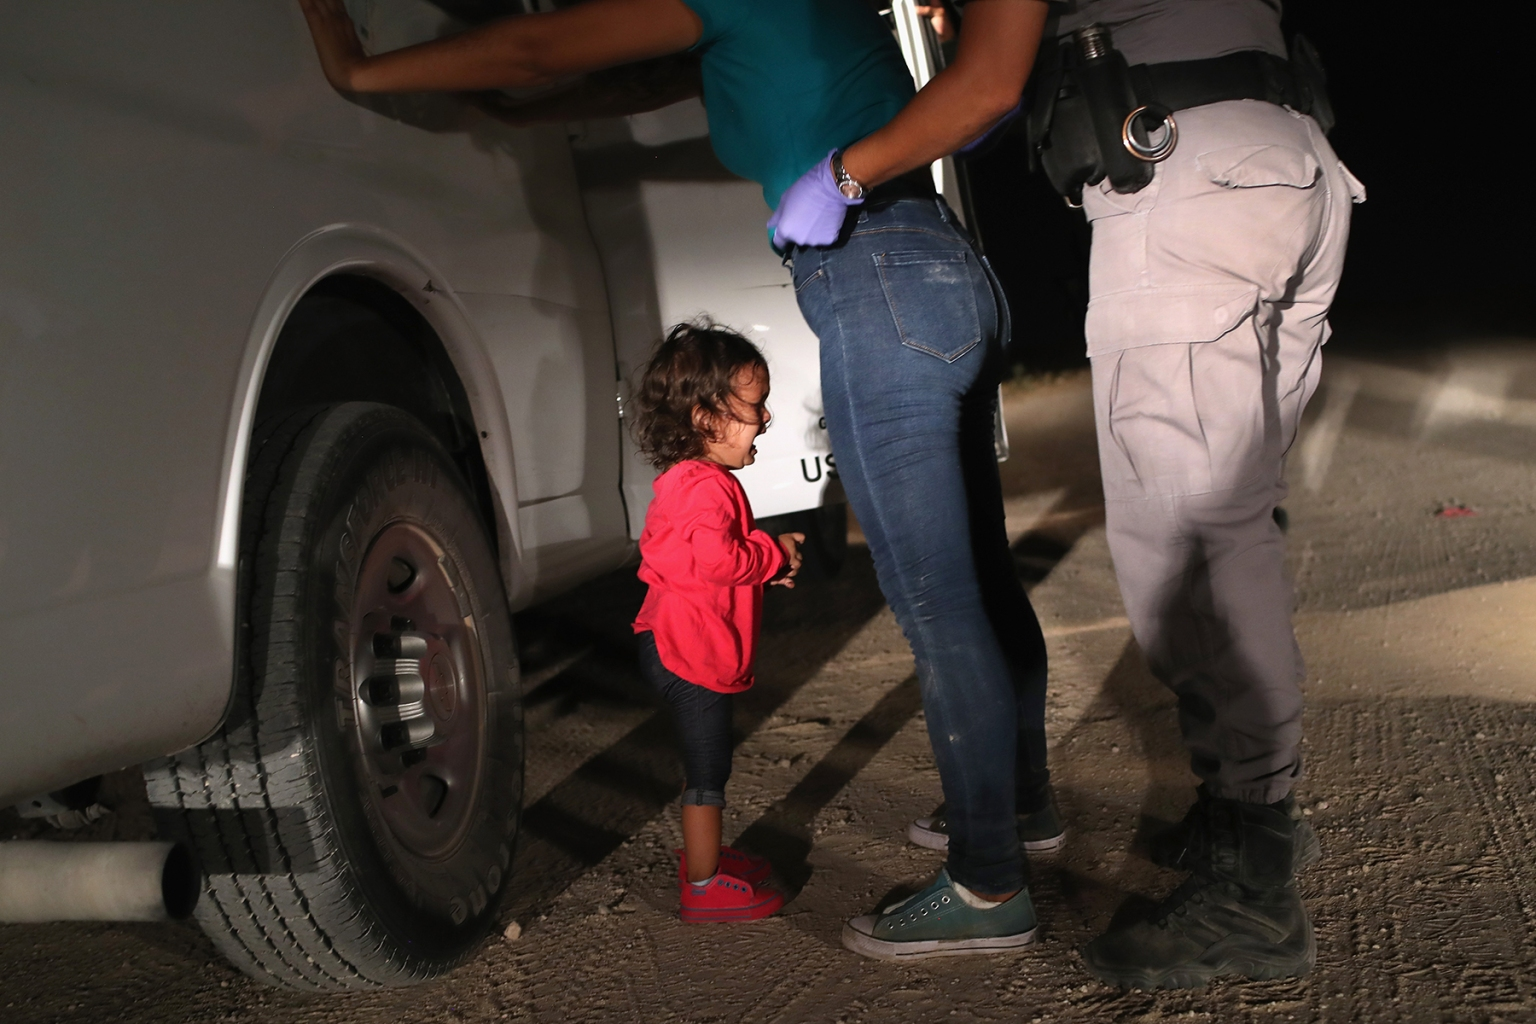 A 2-year-old Honduran asylum seeker cries as her mother is searched and detained near the U.S.-Mexico border in McAllen, Texas, on June 12. John Moore/Getty Images